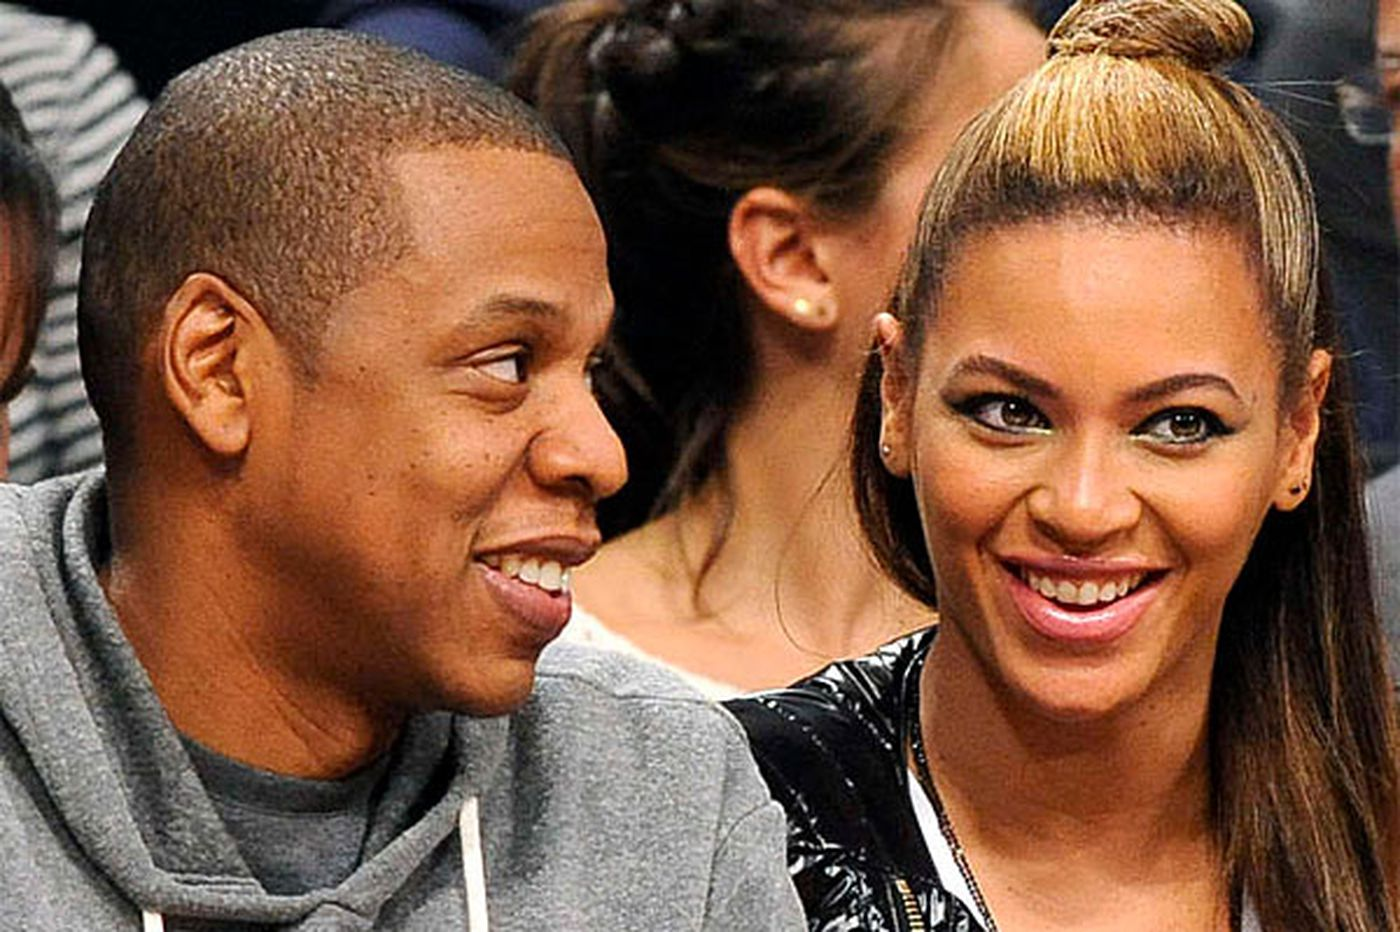 Sideshow: Beyonce and Jay Z tour in Philadelphia July 5